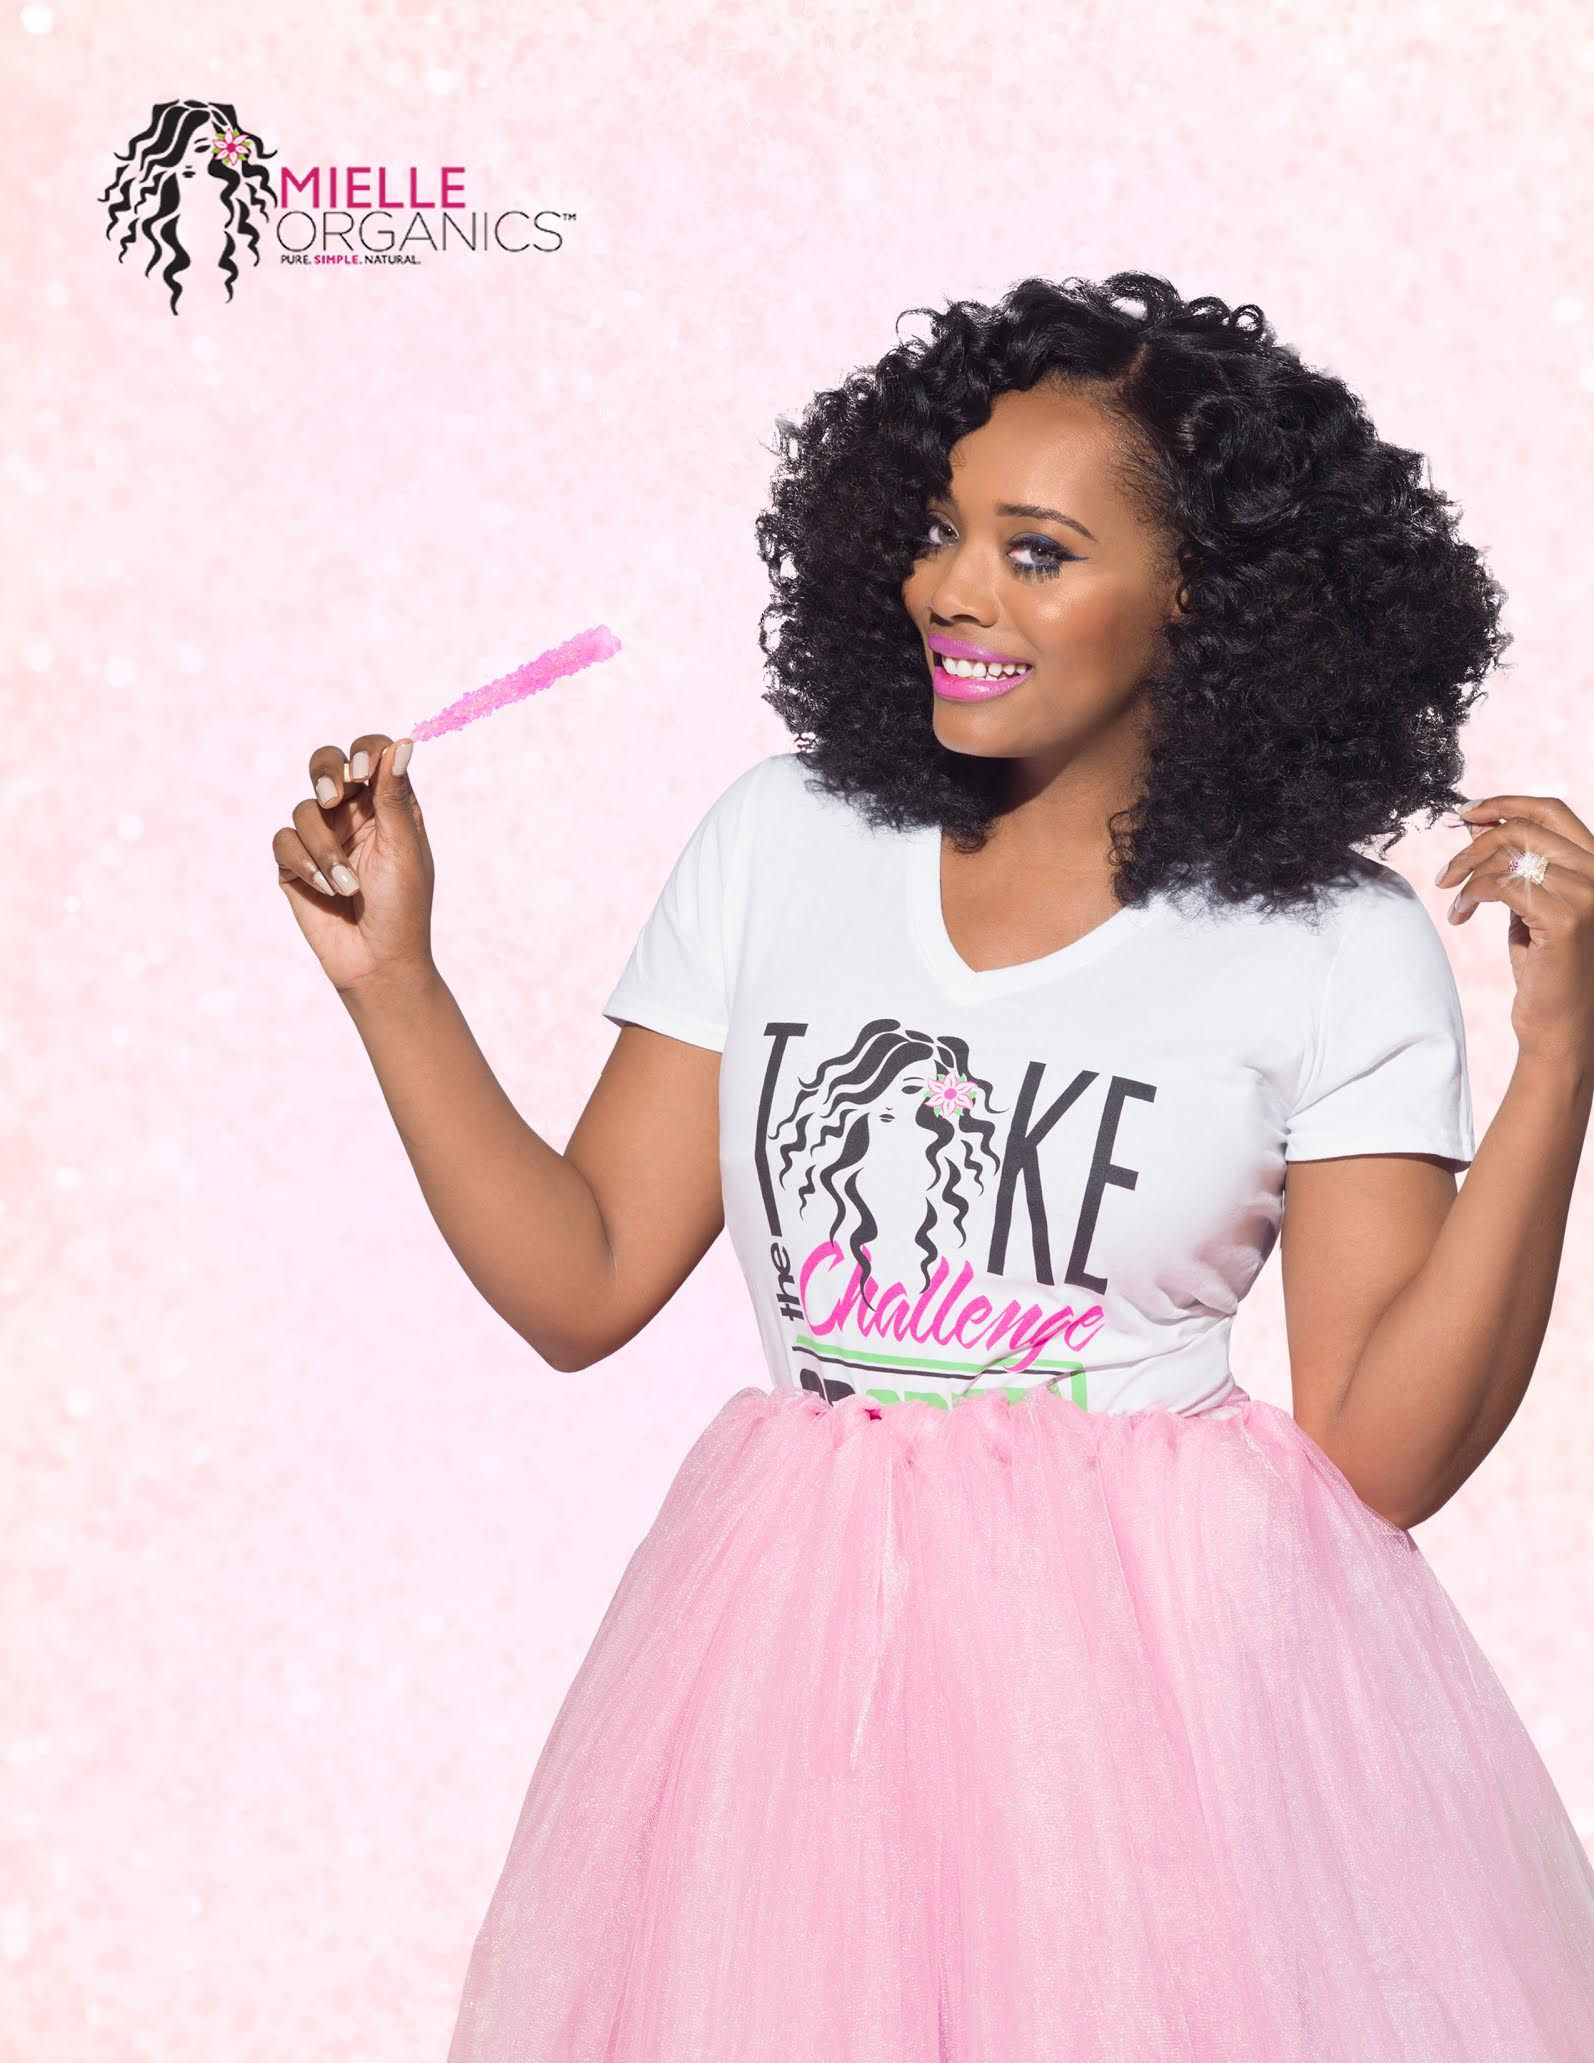 Yandy smith bio ethnic background - Vh1 S Yandy Smith Signs On As Mielle Organics First Celebrity Brand Ambassador Http